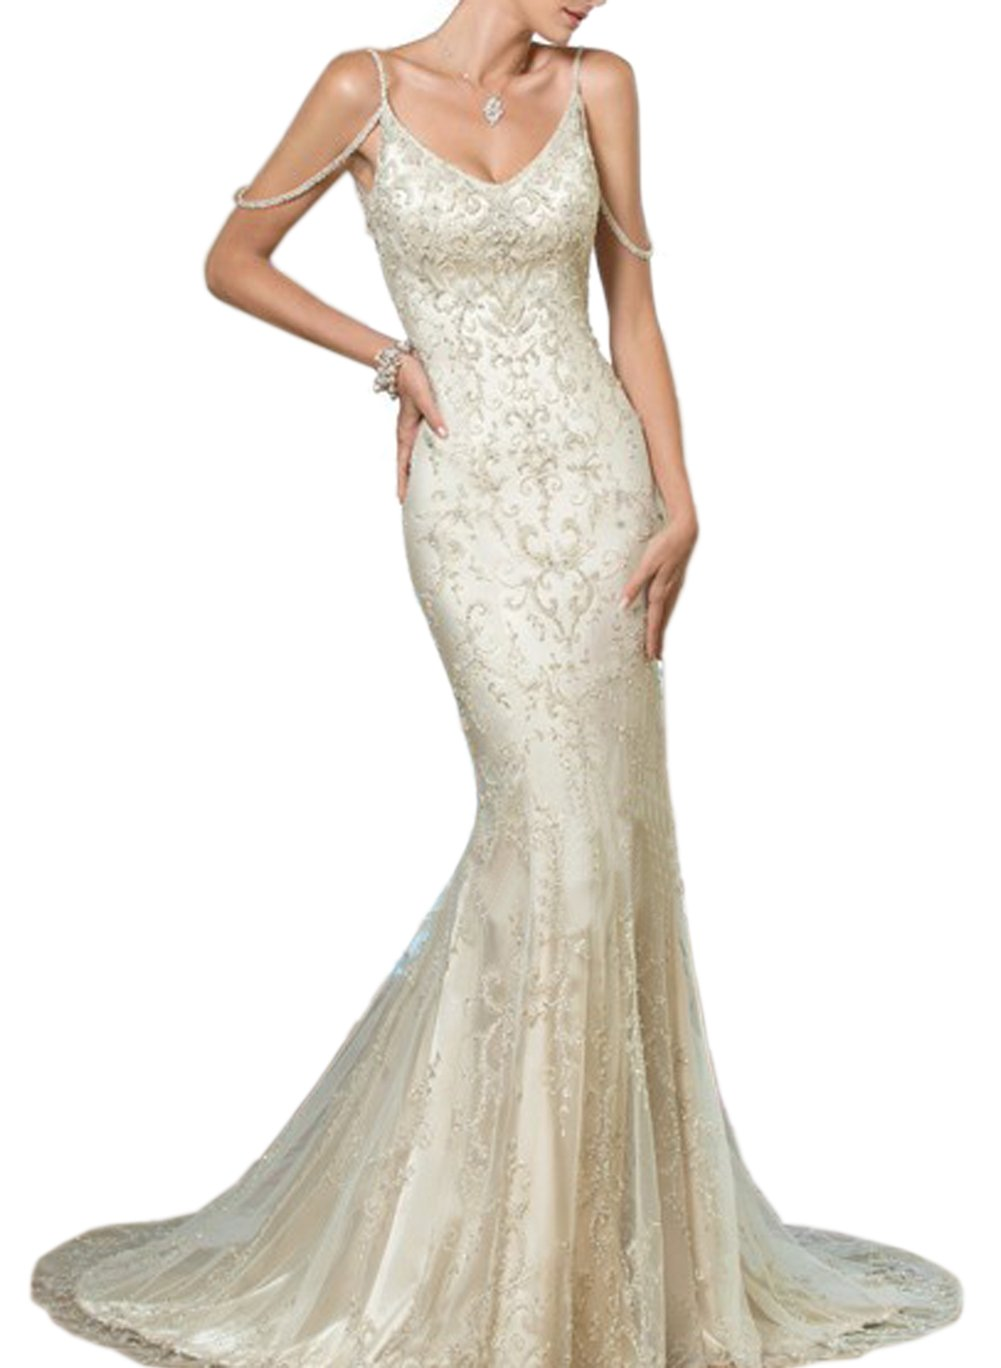 Sayadress Women's Backless Embroidery Long Mermaid Wedding Dress with Cold Shoulder Ivory US6